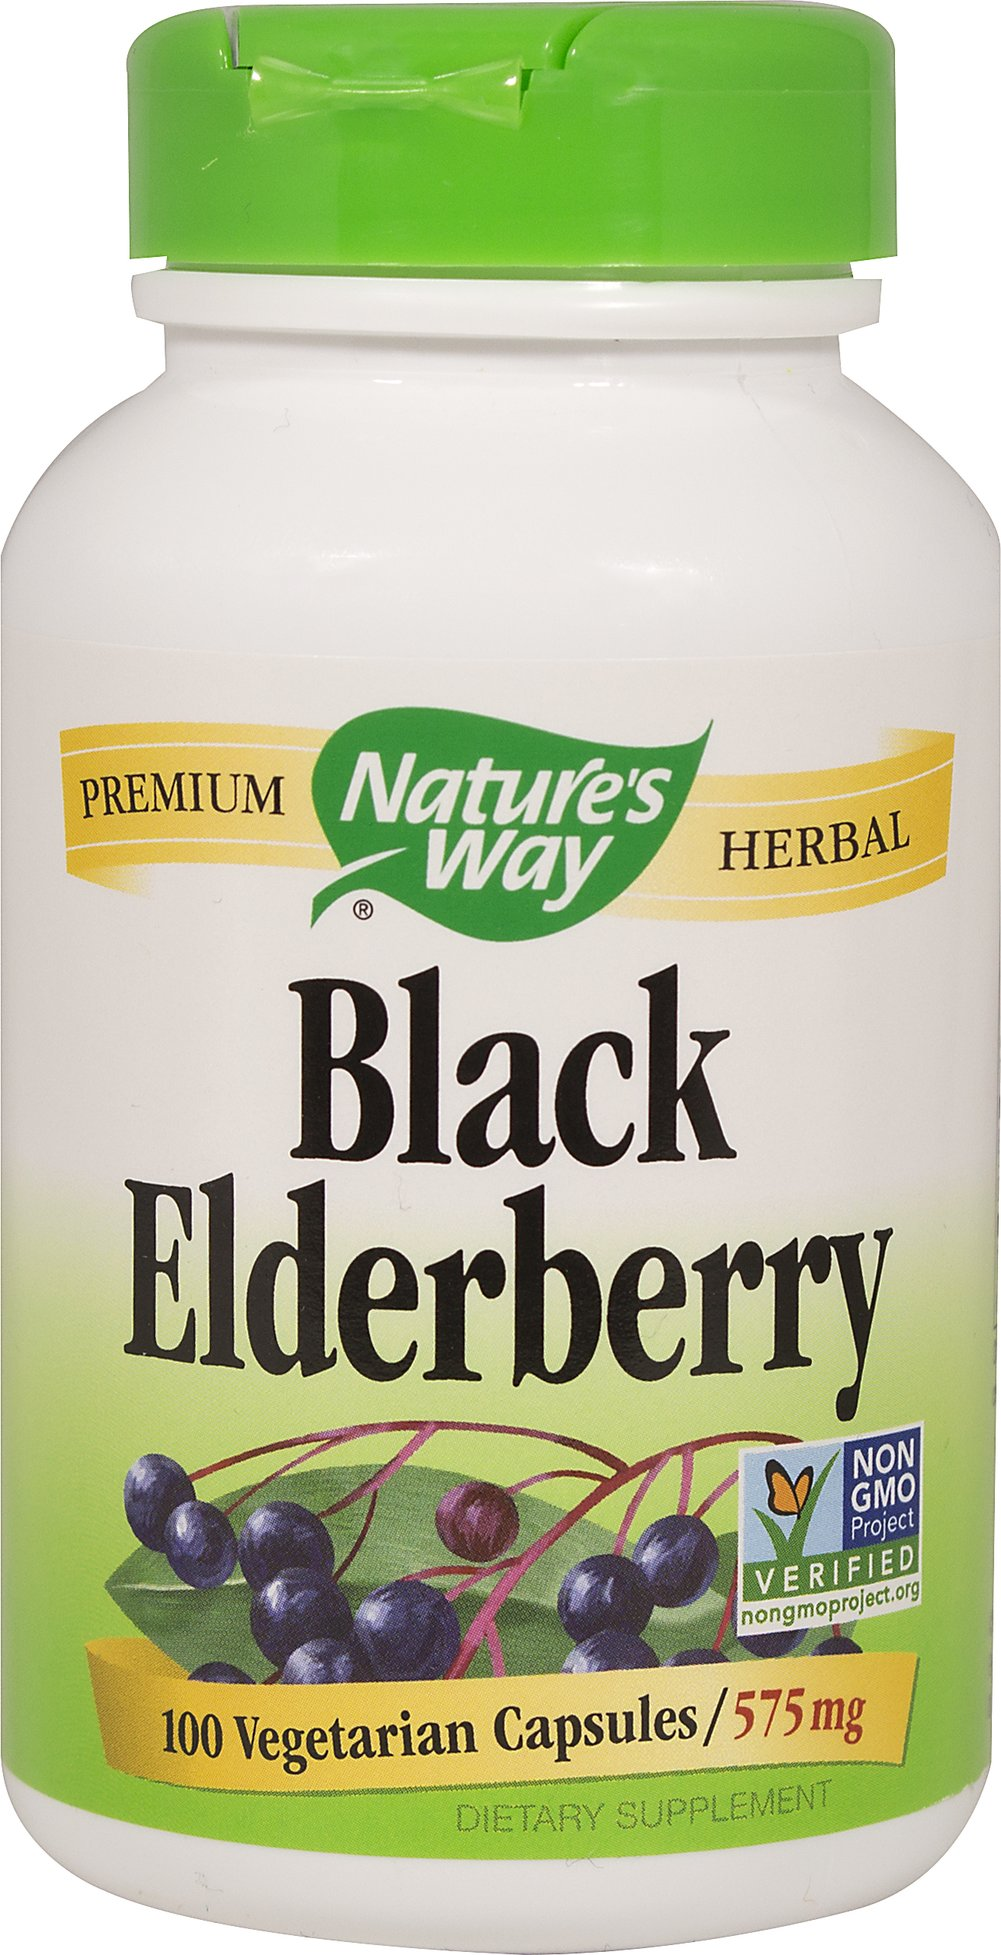 Black Elderberry 575 mg  100 Vegi Caps 575 mg $8.79